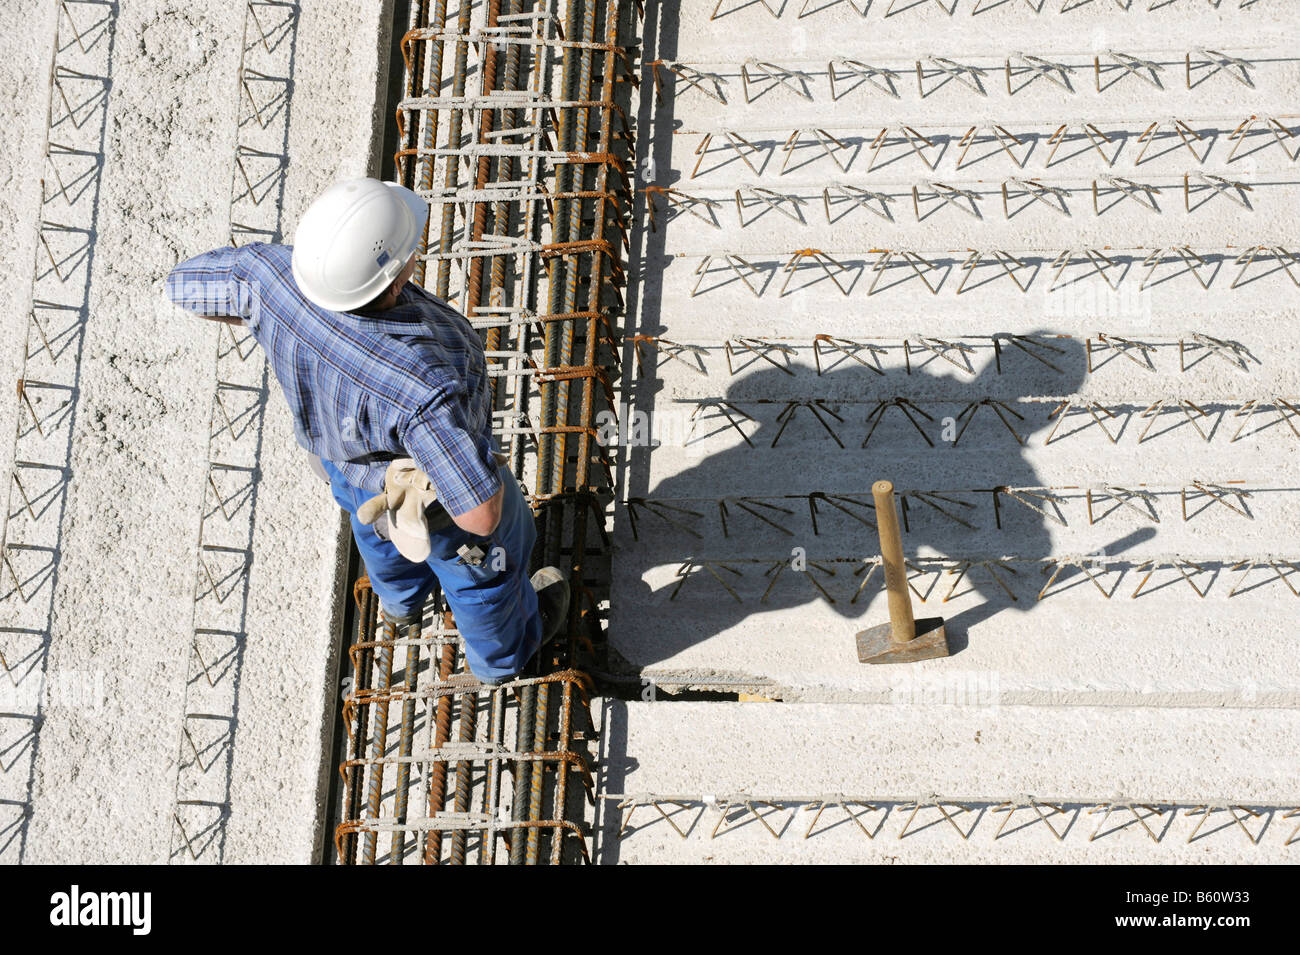 Laying a precast concrete ceiling, foreman inspecting the progress on the contruction site of an office building - Stock Image